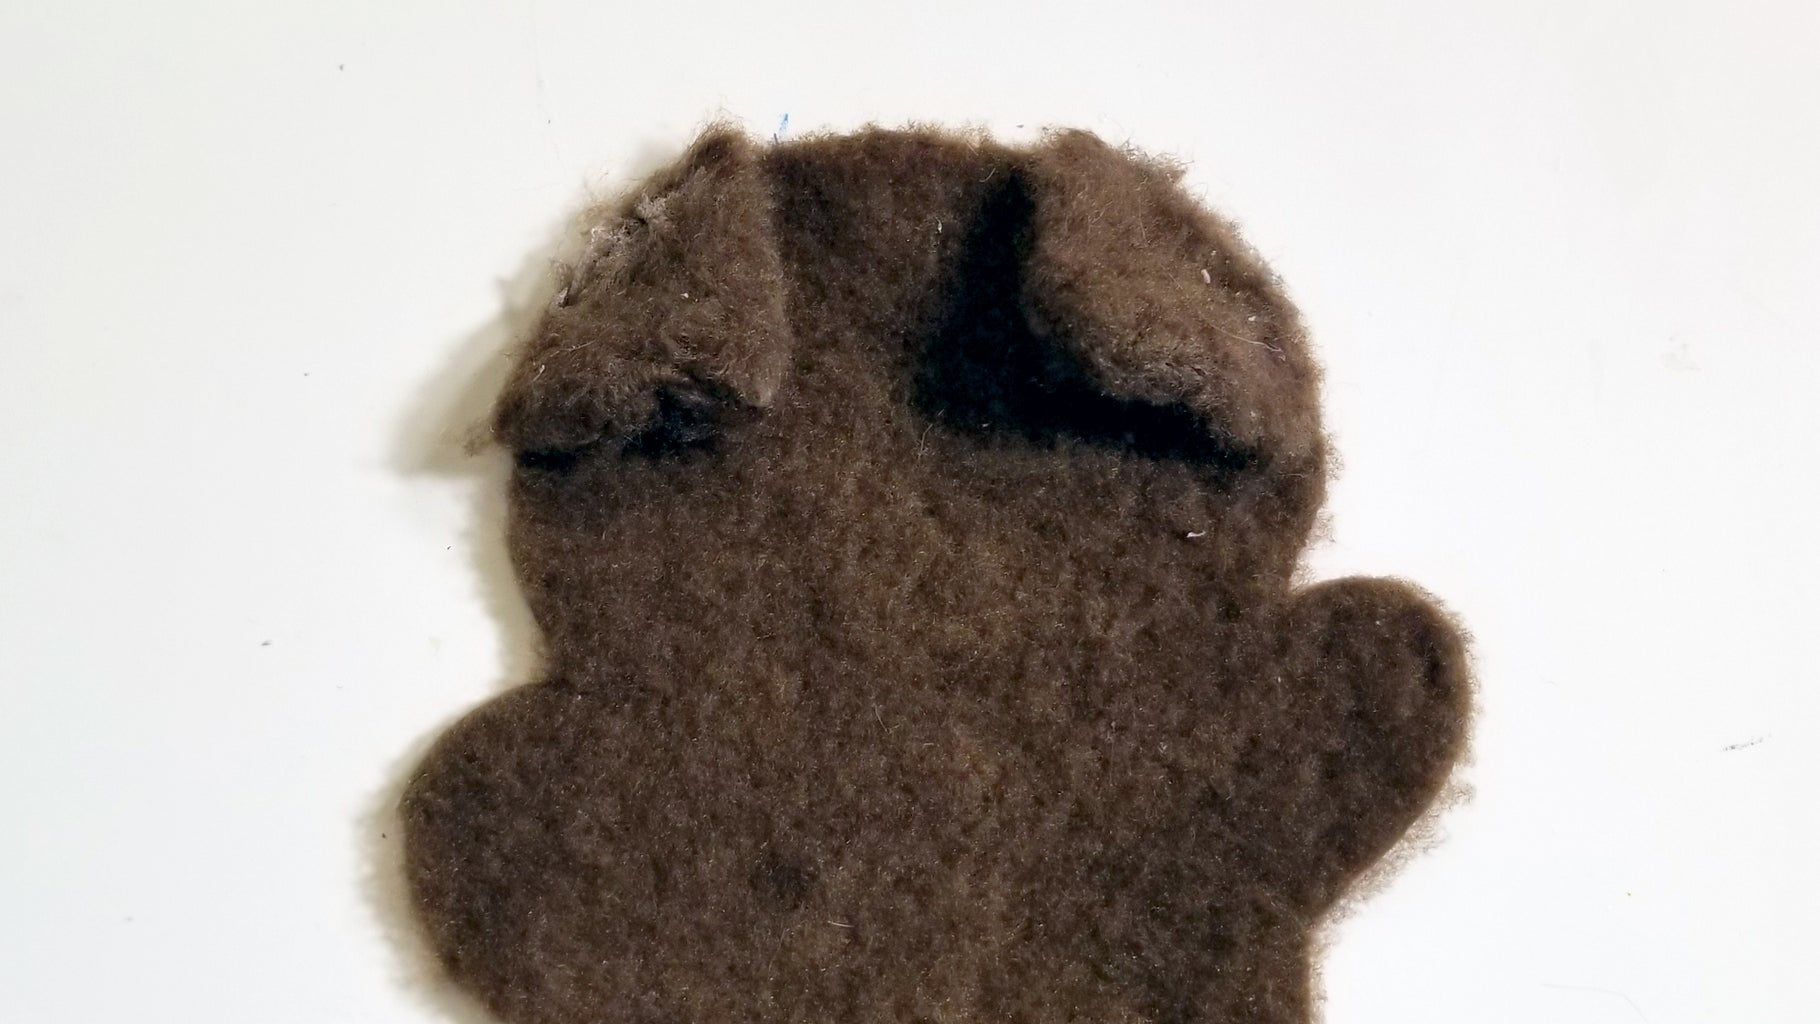 Add Ears to the Teddy